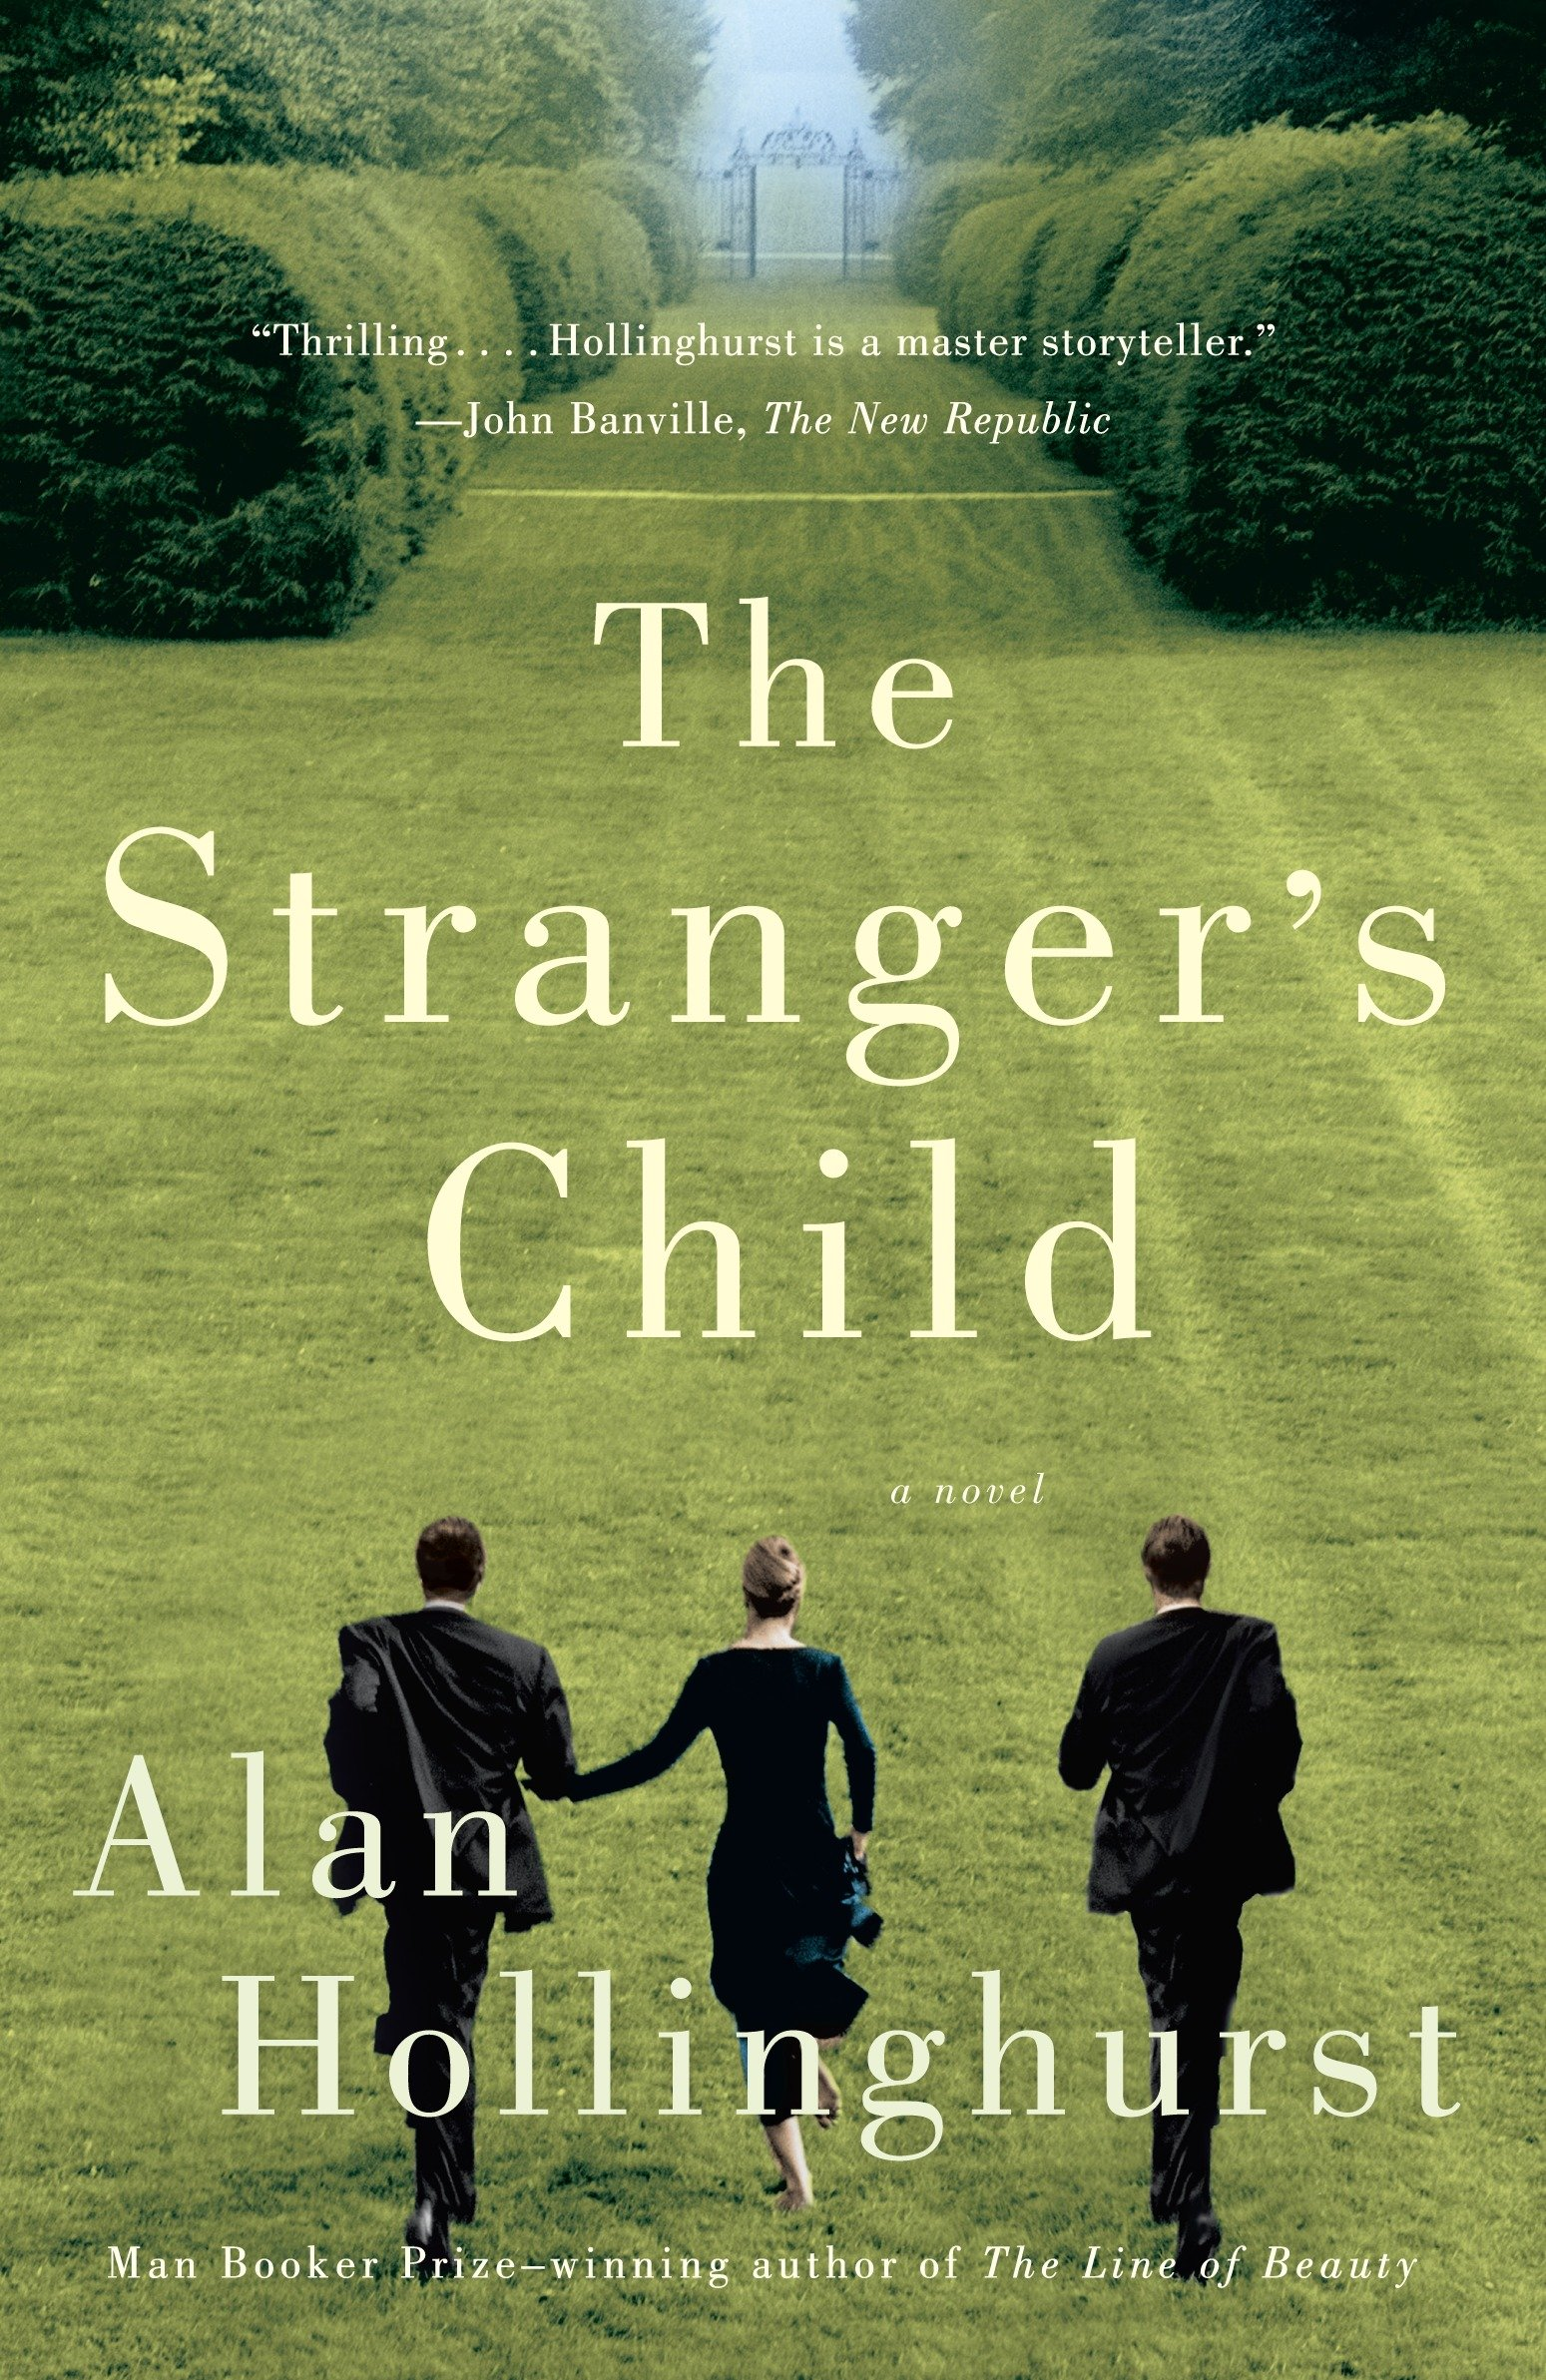 The stranger's child a novel